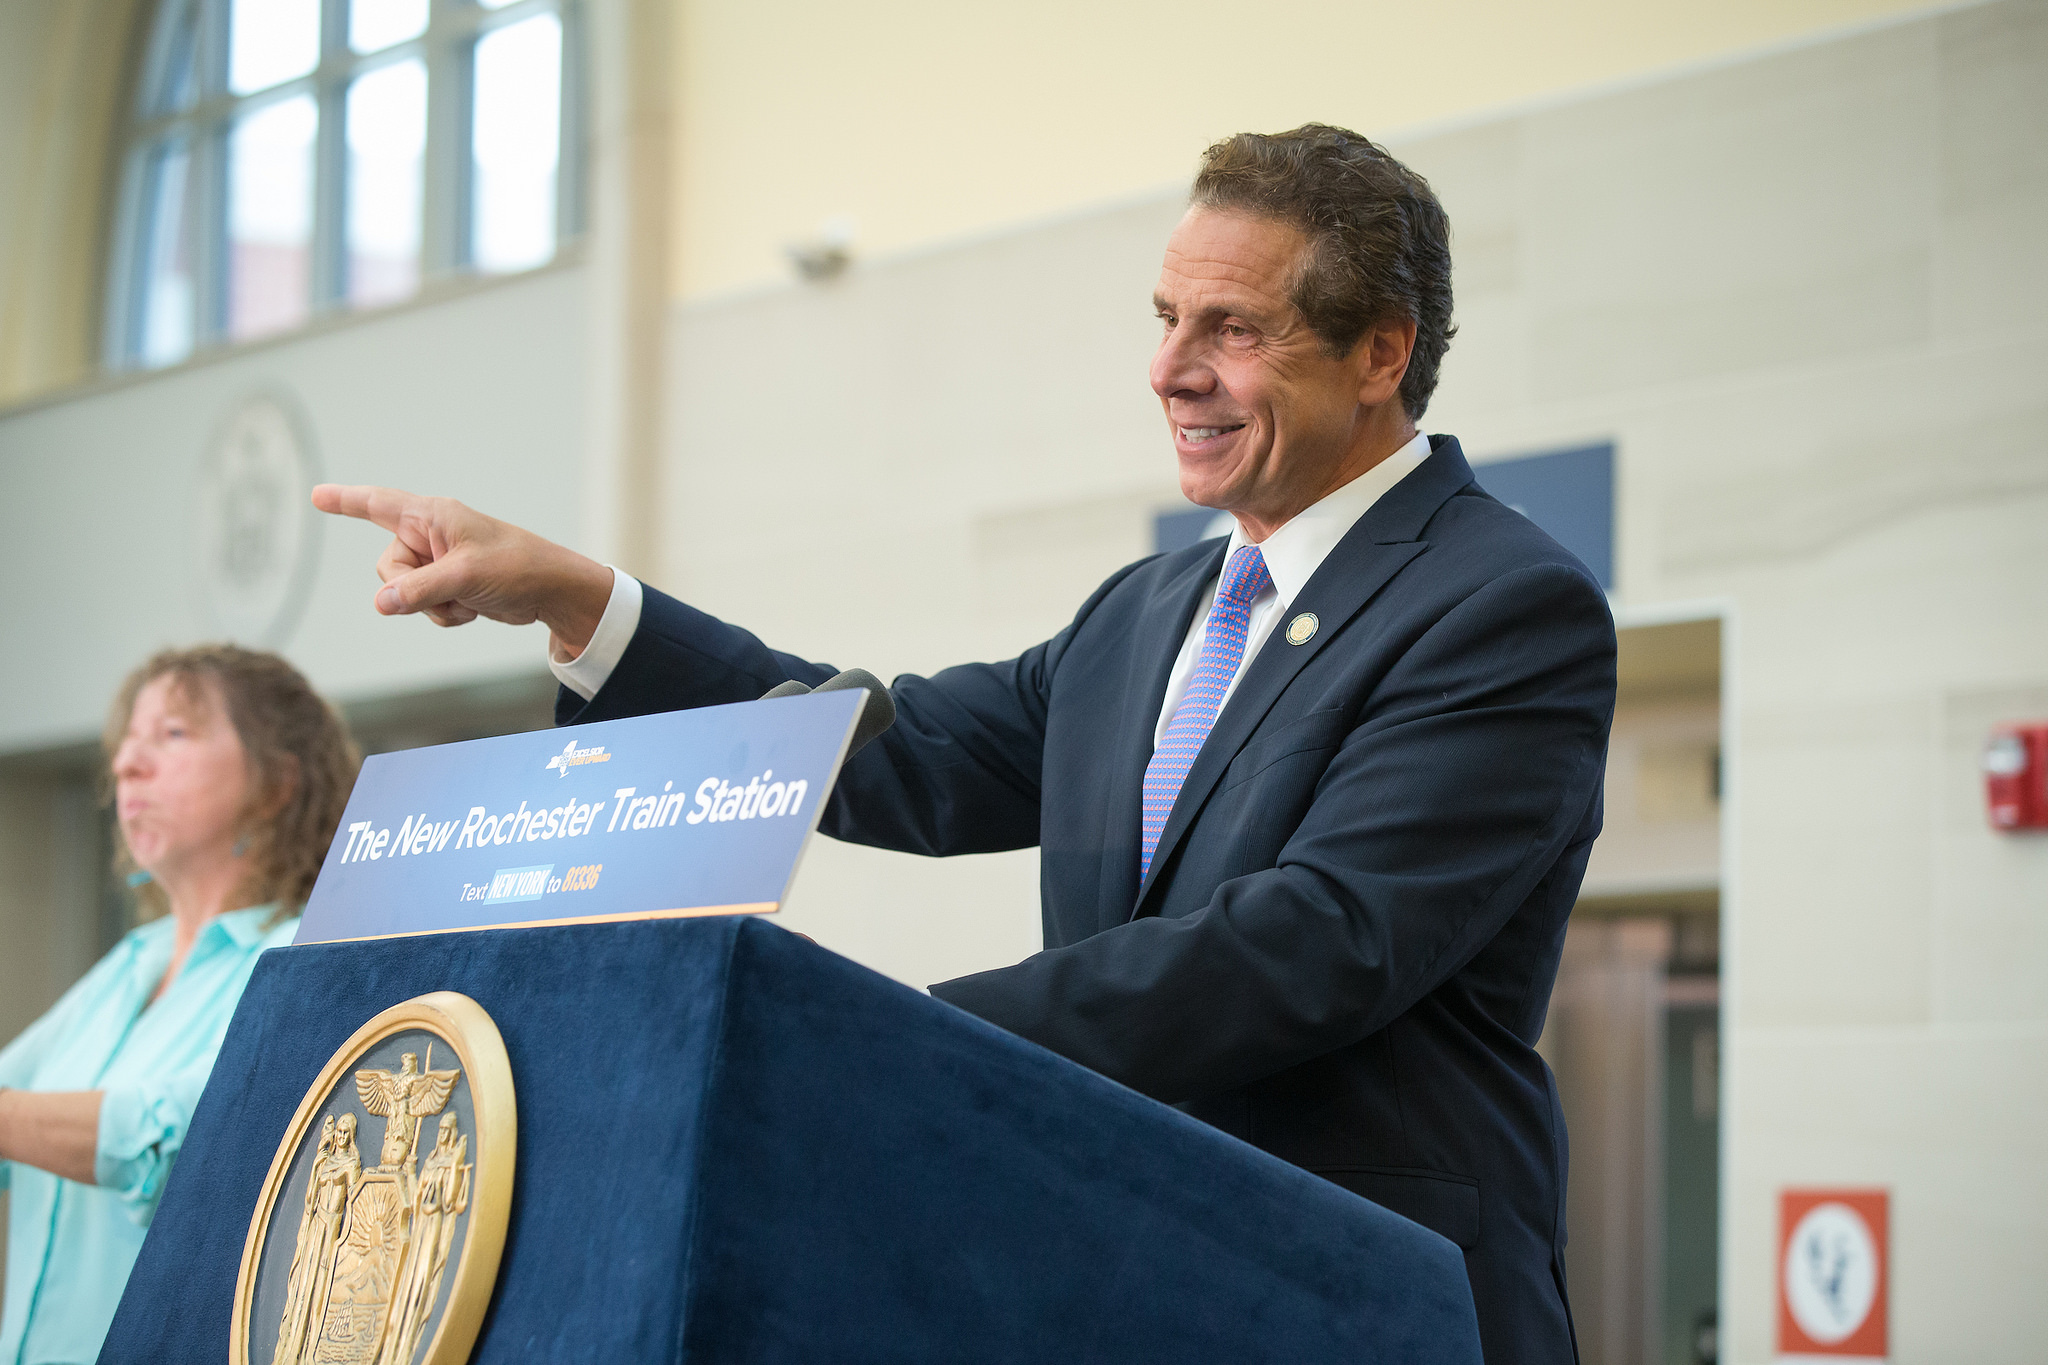 Cuomo claims he is Upstate's 'voice' in Albany